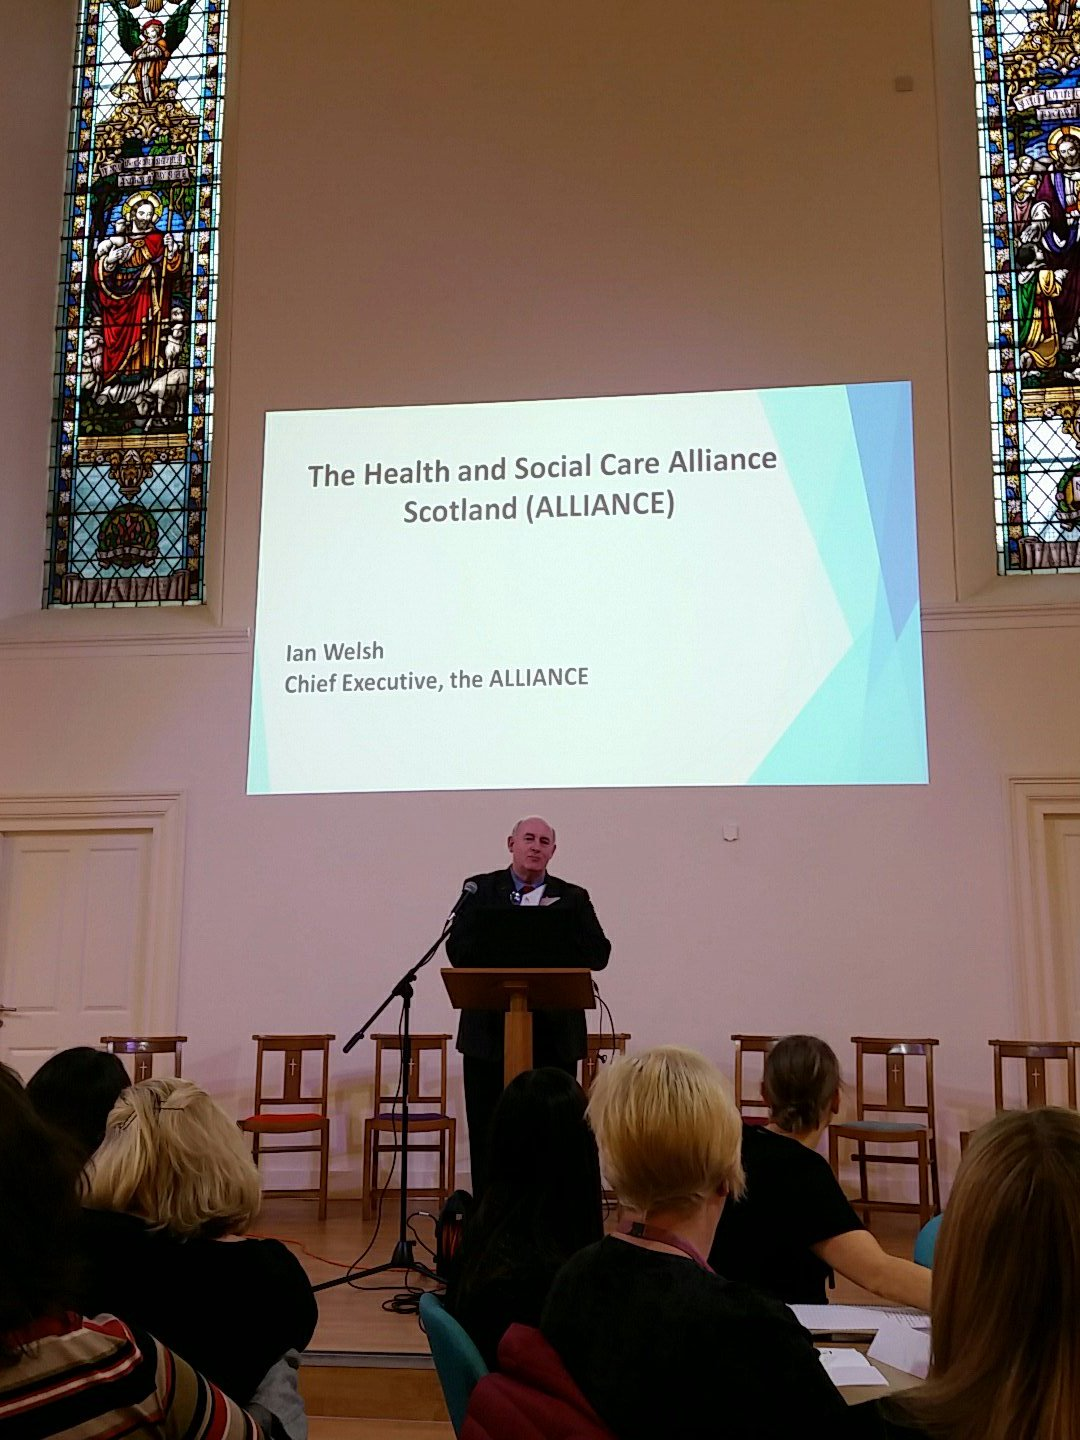 @NAHSCP @iona_colvin @IanMWelsh @Alistair_ahp @ALLIANCEScot Ian Welsh welcomes today and developments.  Good morning all! #Ailip https://t.co/oJqZOnYPSv